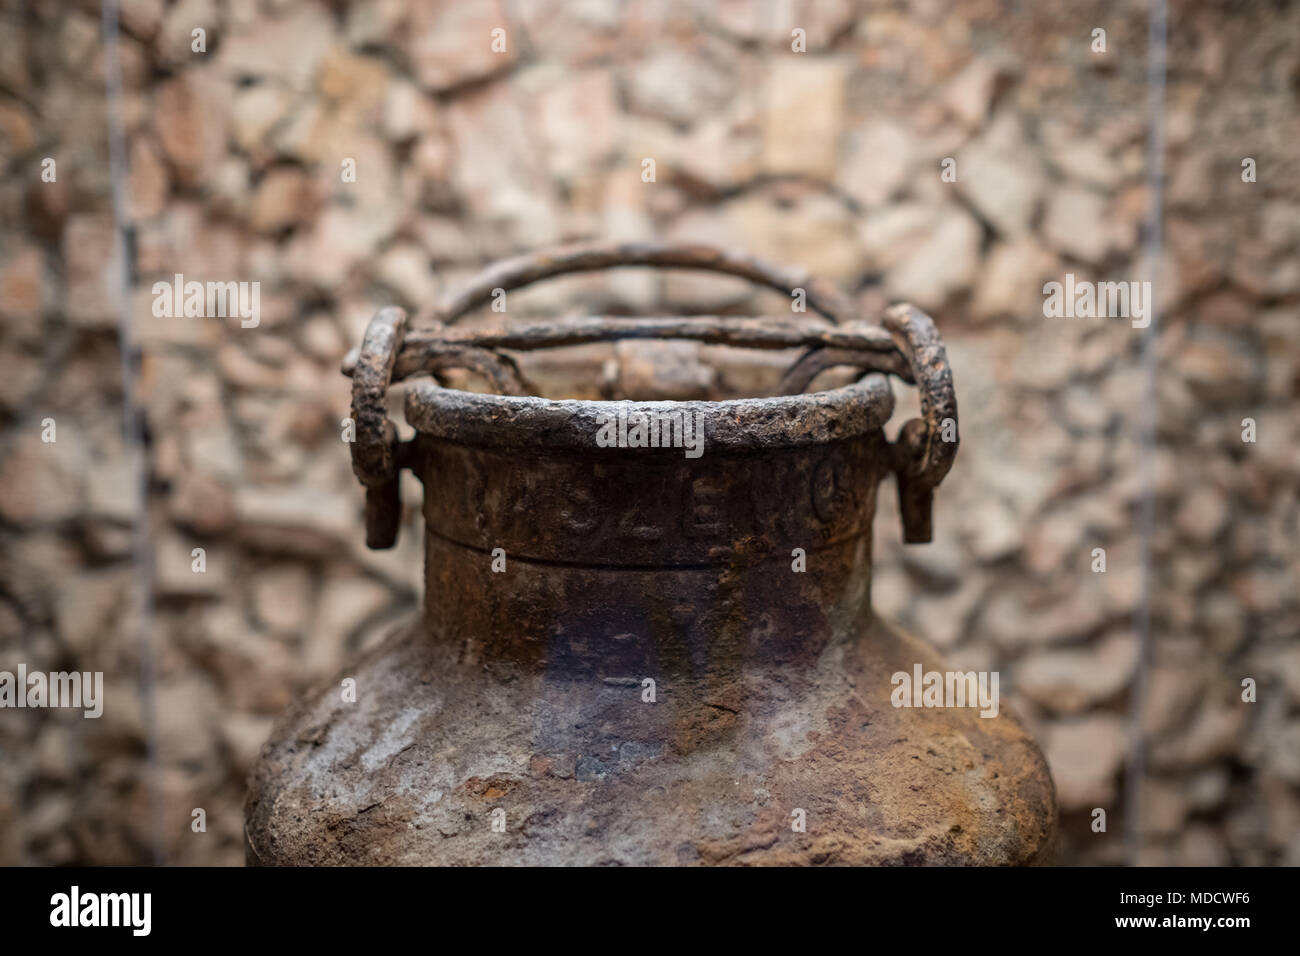 Warsaw Poland, Urn at the Jewish Historical Institute, in which documents were collected and buried by Jews in the Warsaw Ghetto during World War Two. - Stock Image